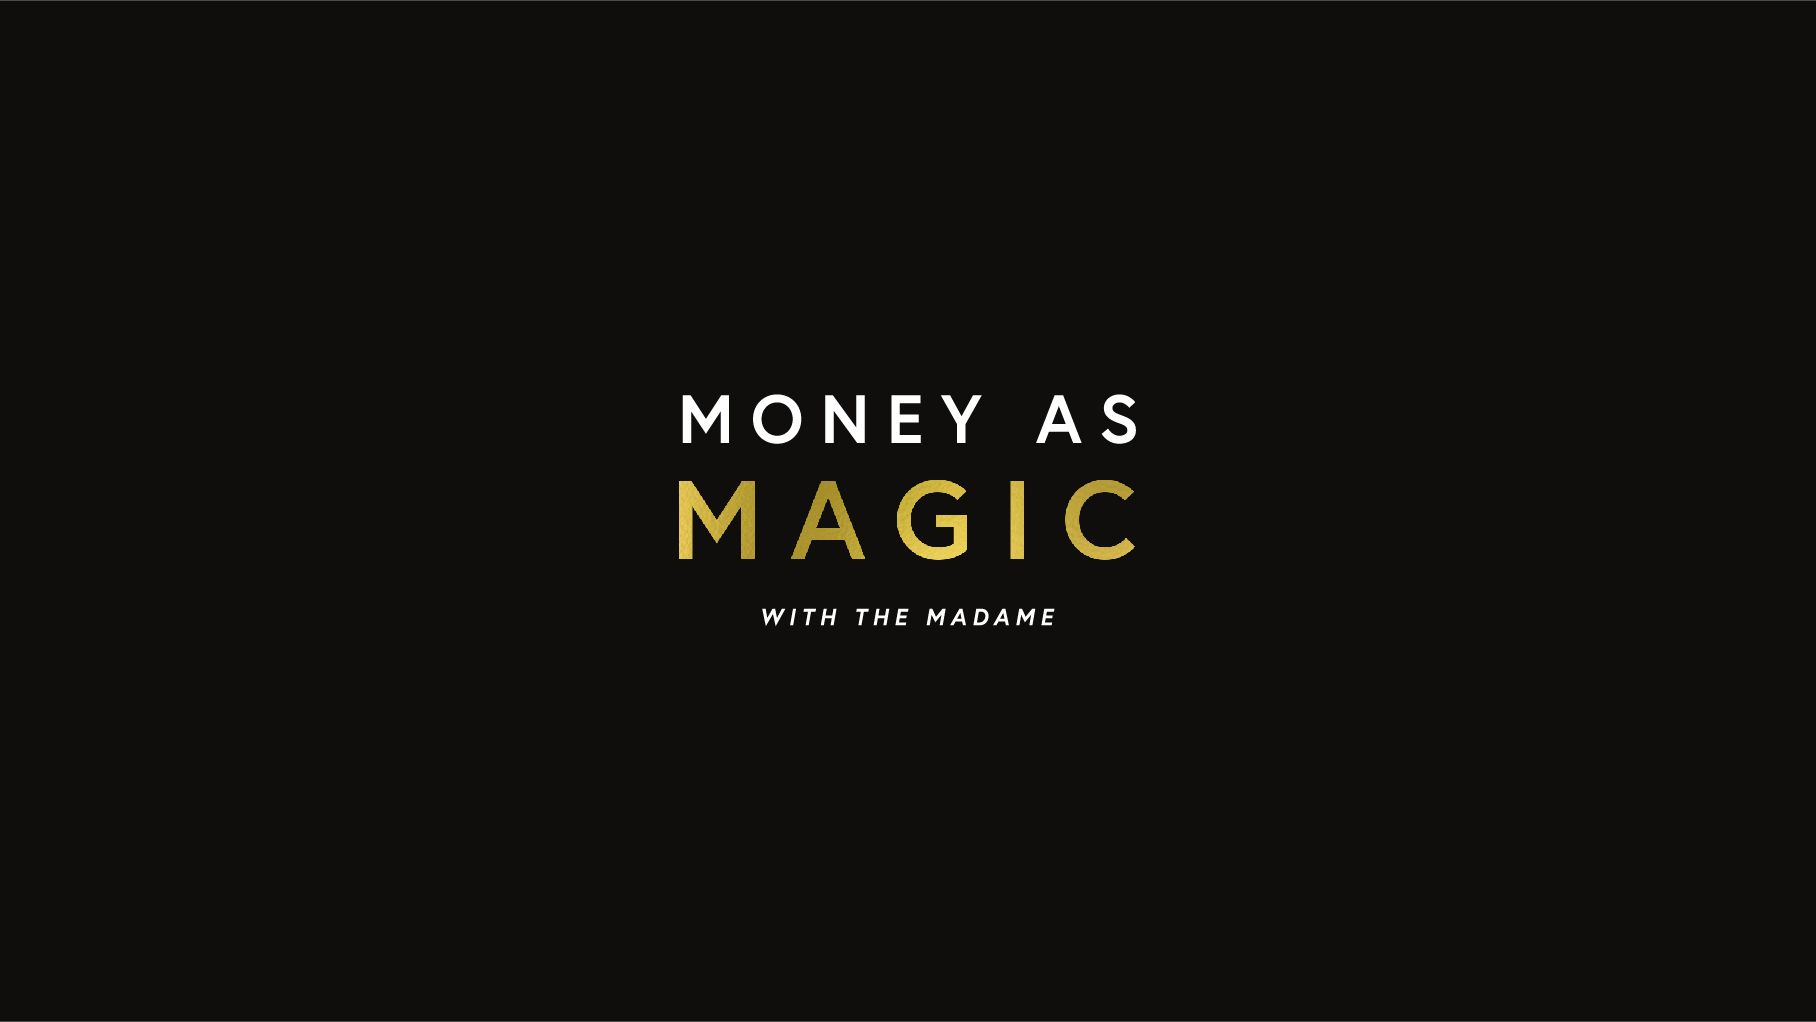 money-as-magic_video-cover_1.jpg